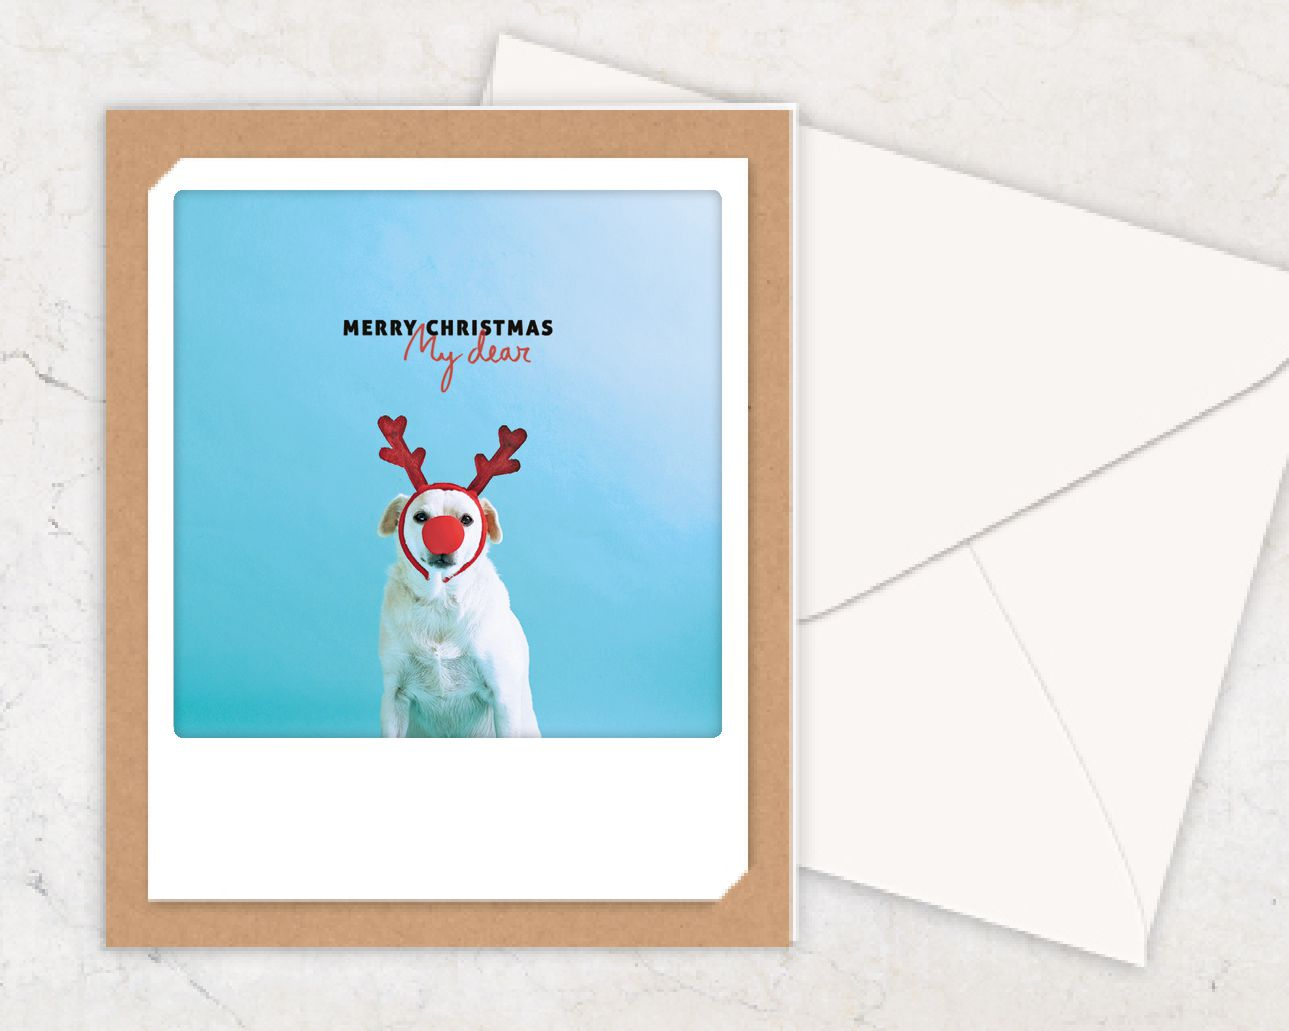 Pickmotion Karte: Merry Christmas my dear - Tierisch-tolle-Geschenke